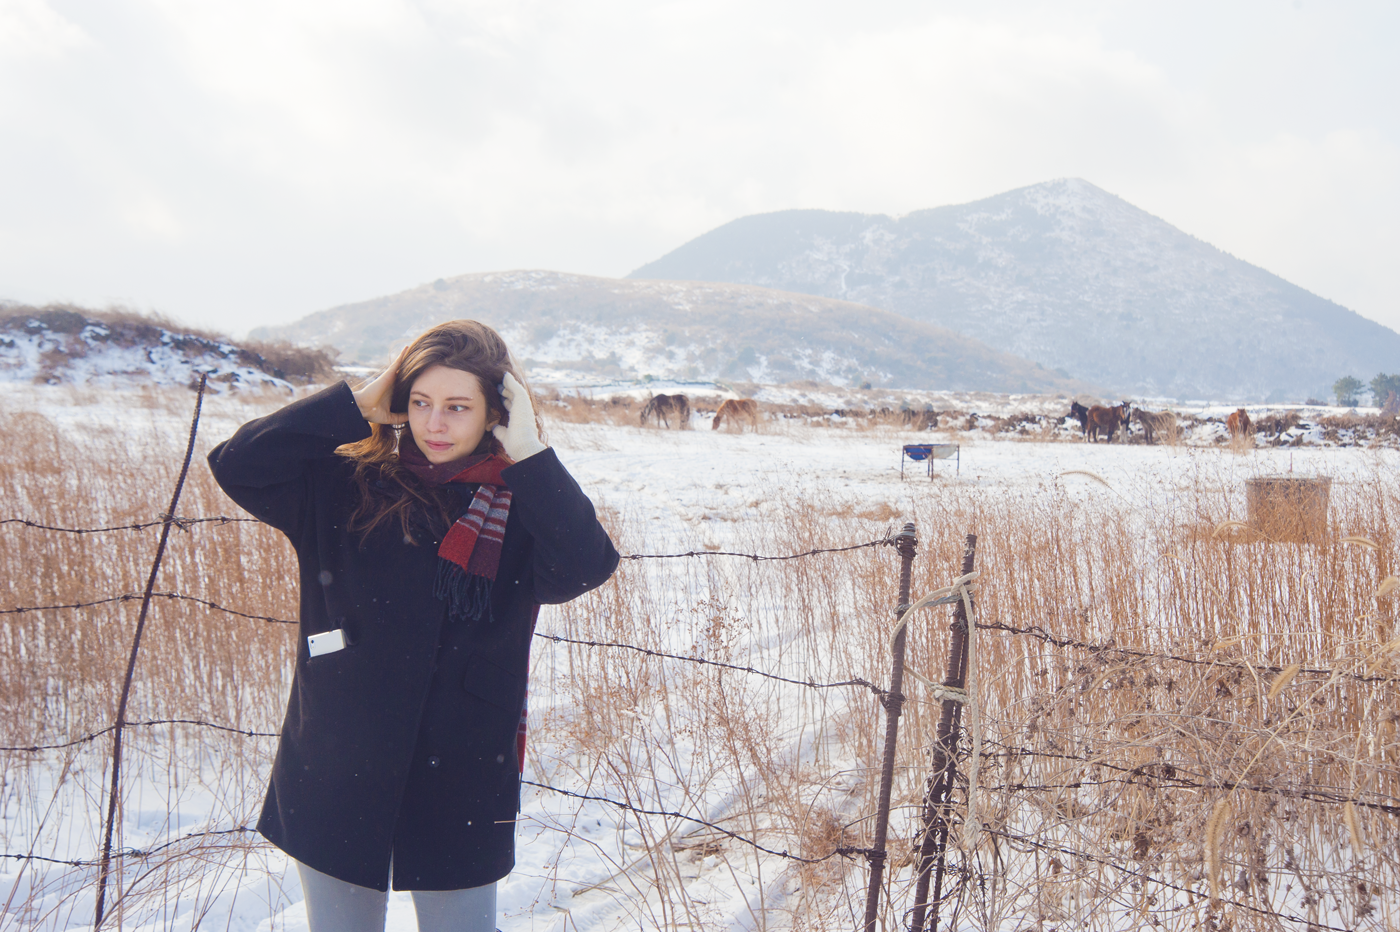 Jeju Island in winter: Travel guide and visual diary by a local. I love the crisp colors and clean air winter brings, and the calm atmosphere all over Jeju. Read on to find tips and inspiration for your own visit to Jeju Island.